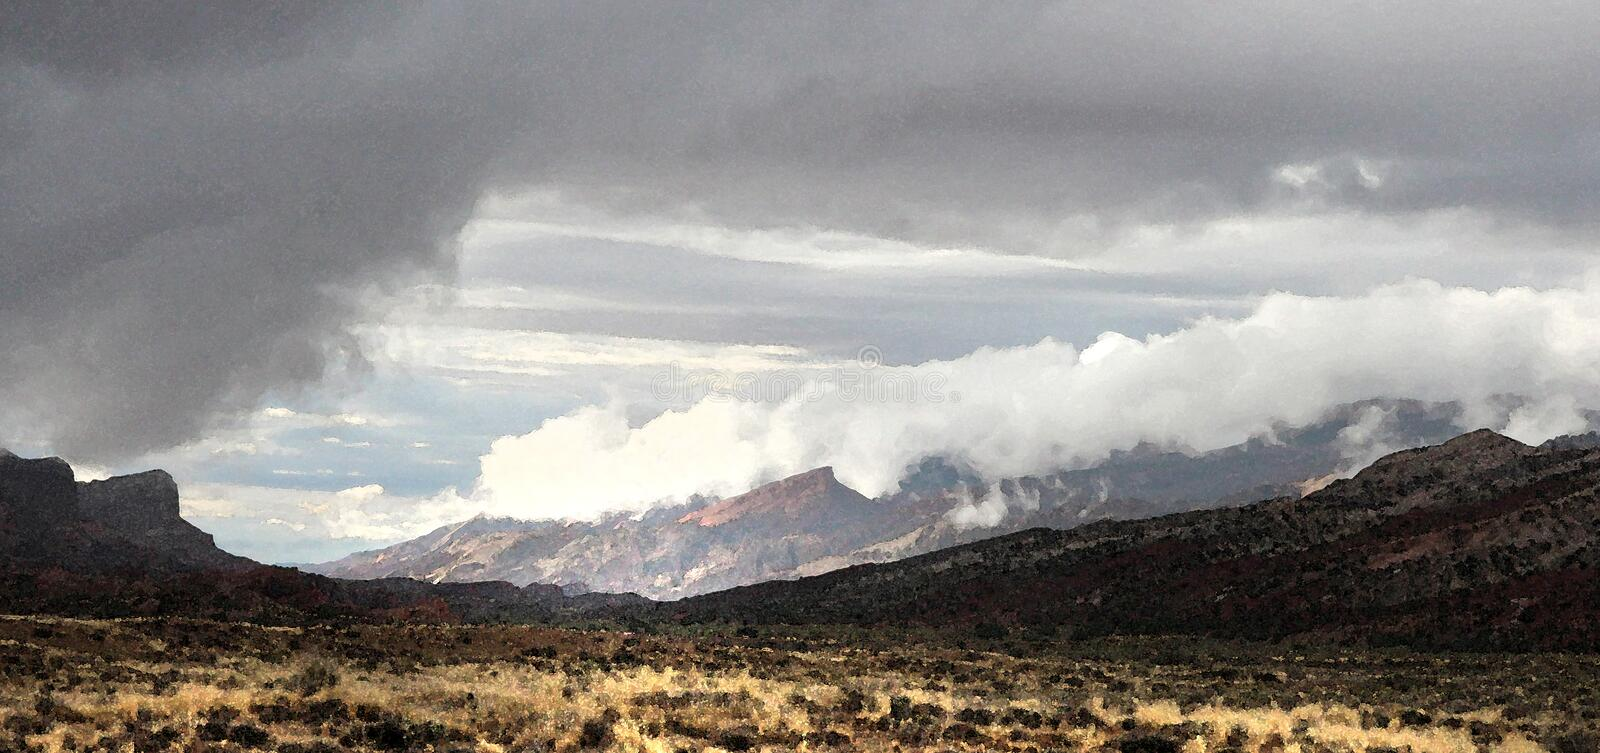 Capitol Reef National Park Area, Garfield Co, Utah - 2016-09-29 - Gathering Storm At East End Burr Trail -03a Free Public Domain Cc0 Image